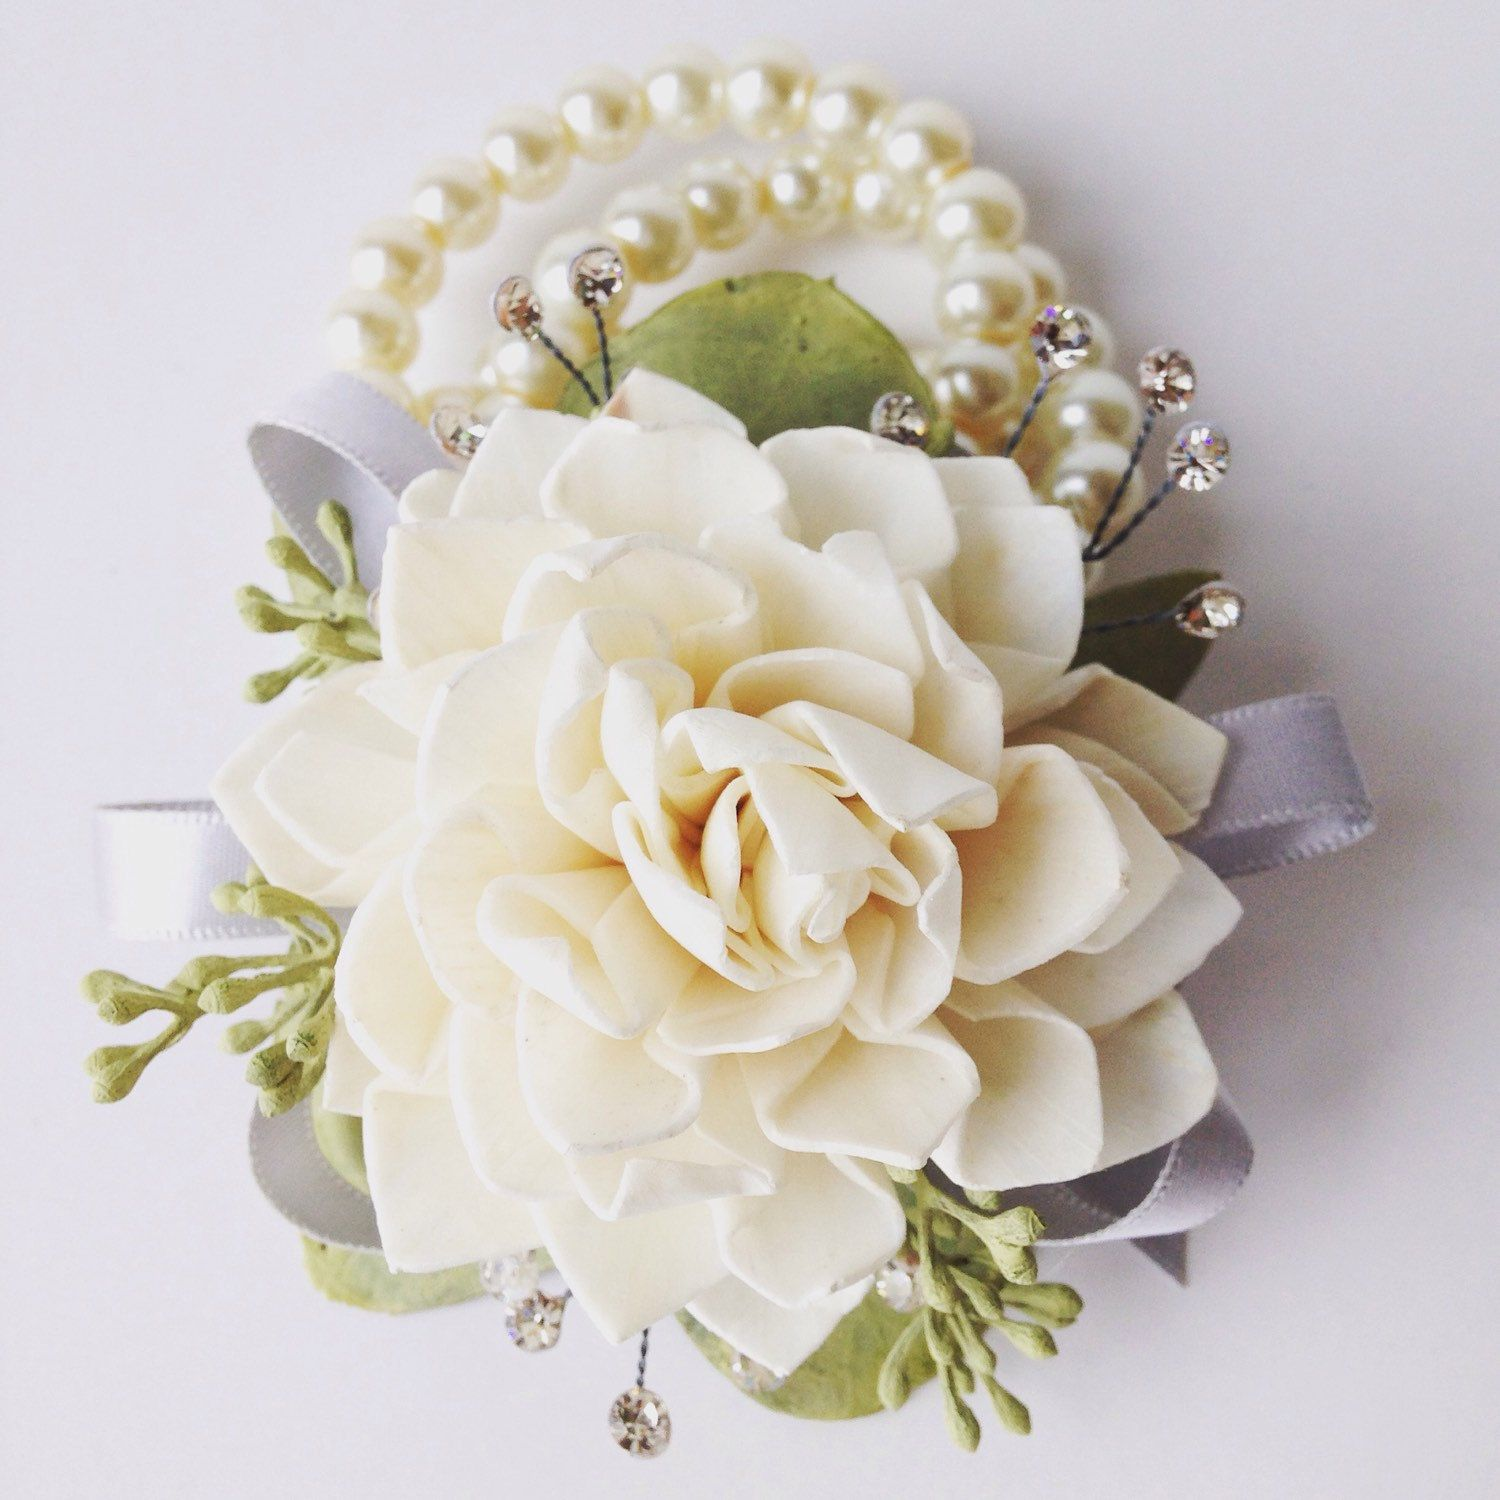 Wedding Corsage Ideas: It's Homecoming Time! Give A Keepsake Corsage That They